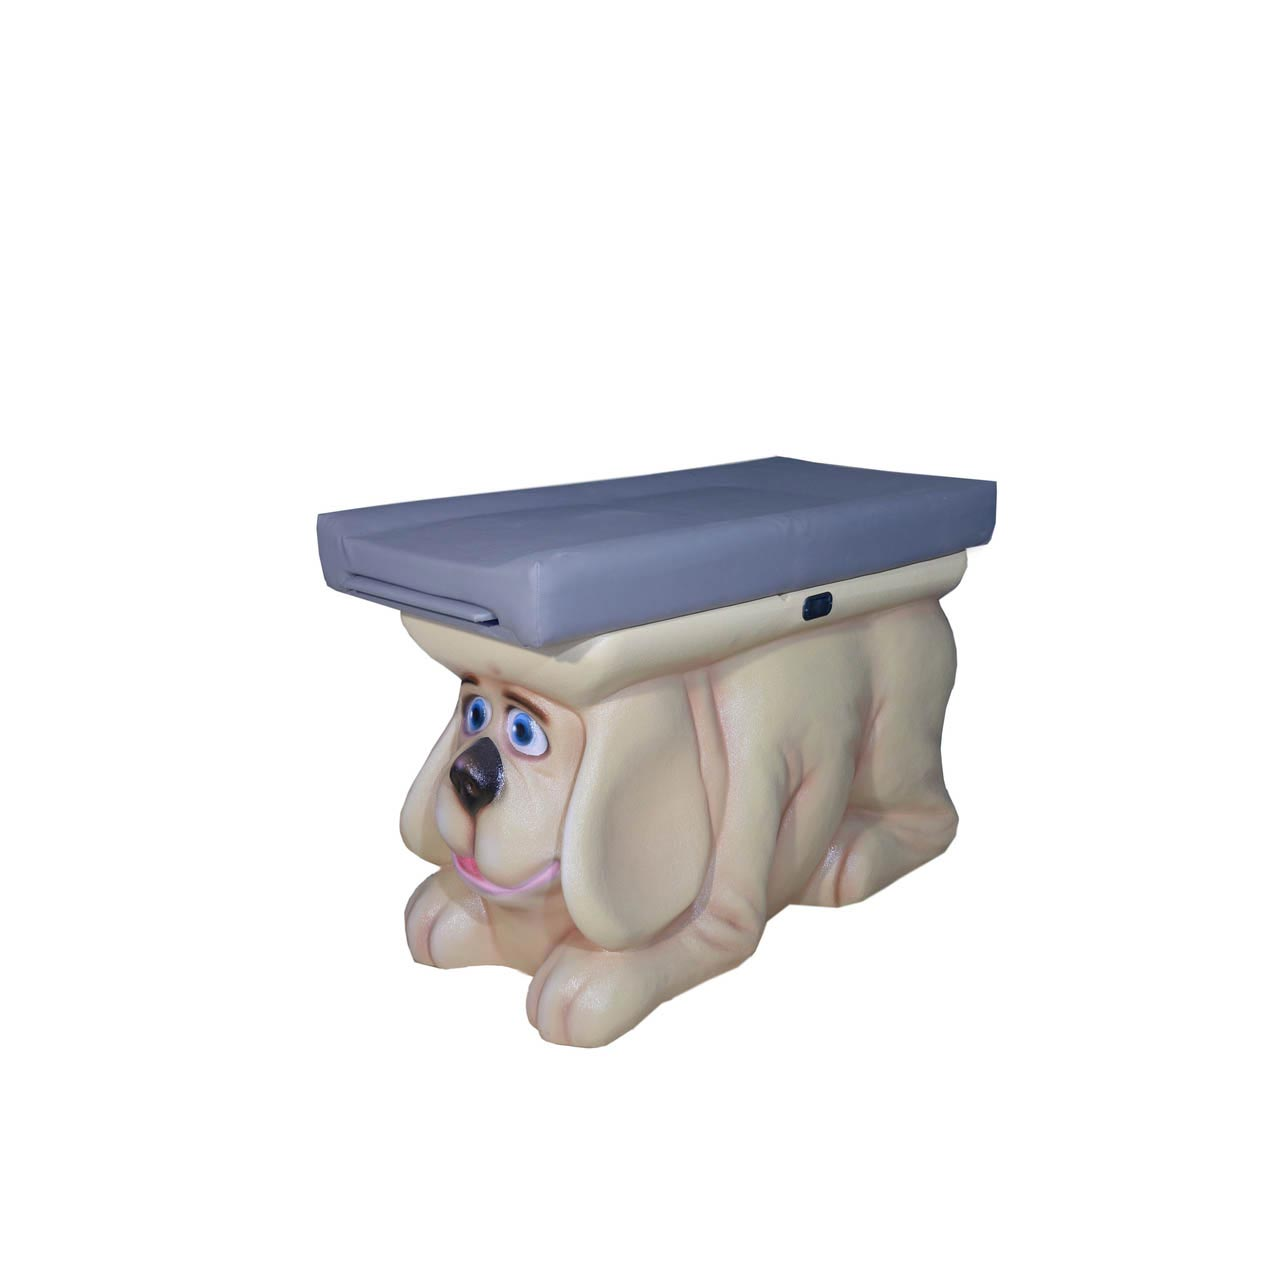 Pedia Pals 4700 Zoopal Puppy compact exam table